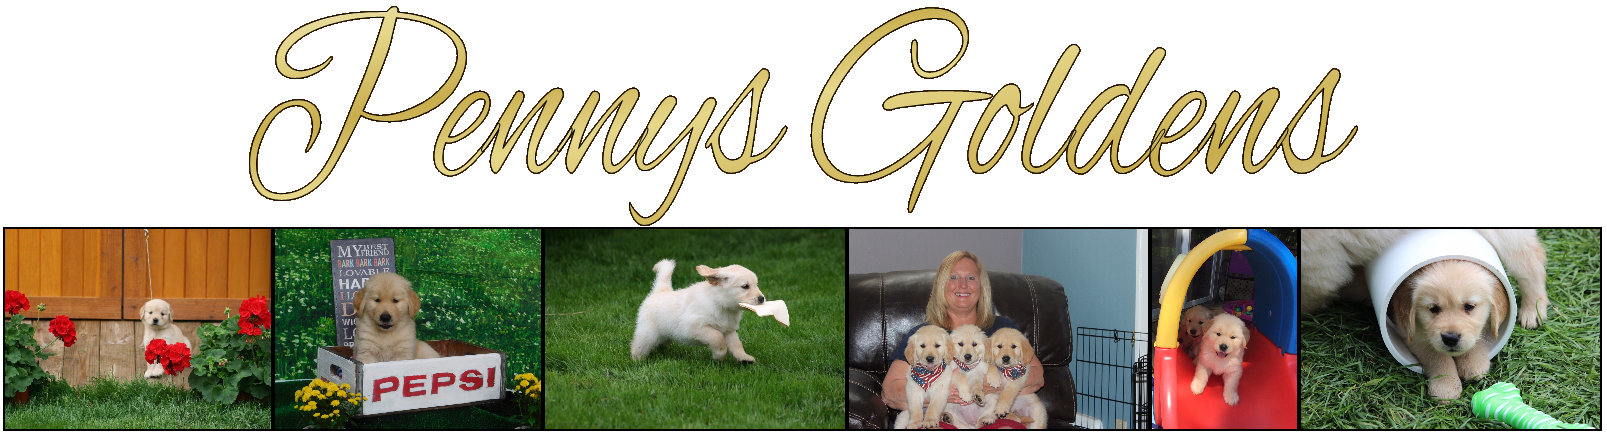 Pennys Goldens